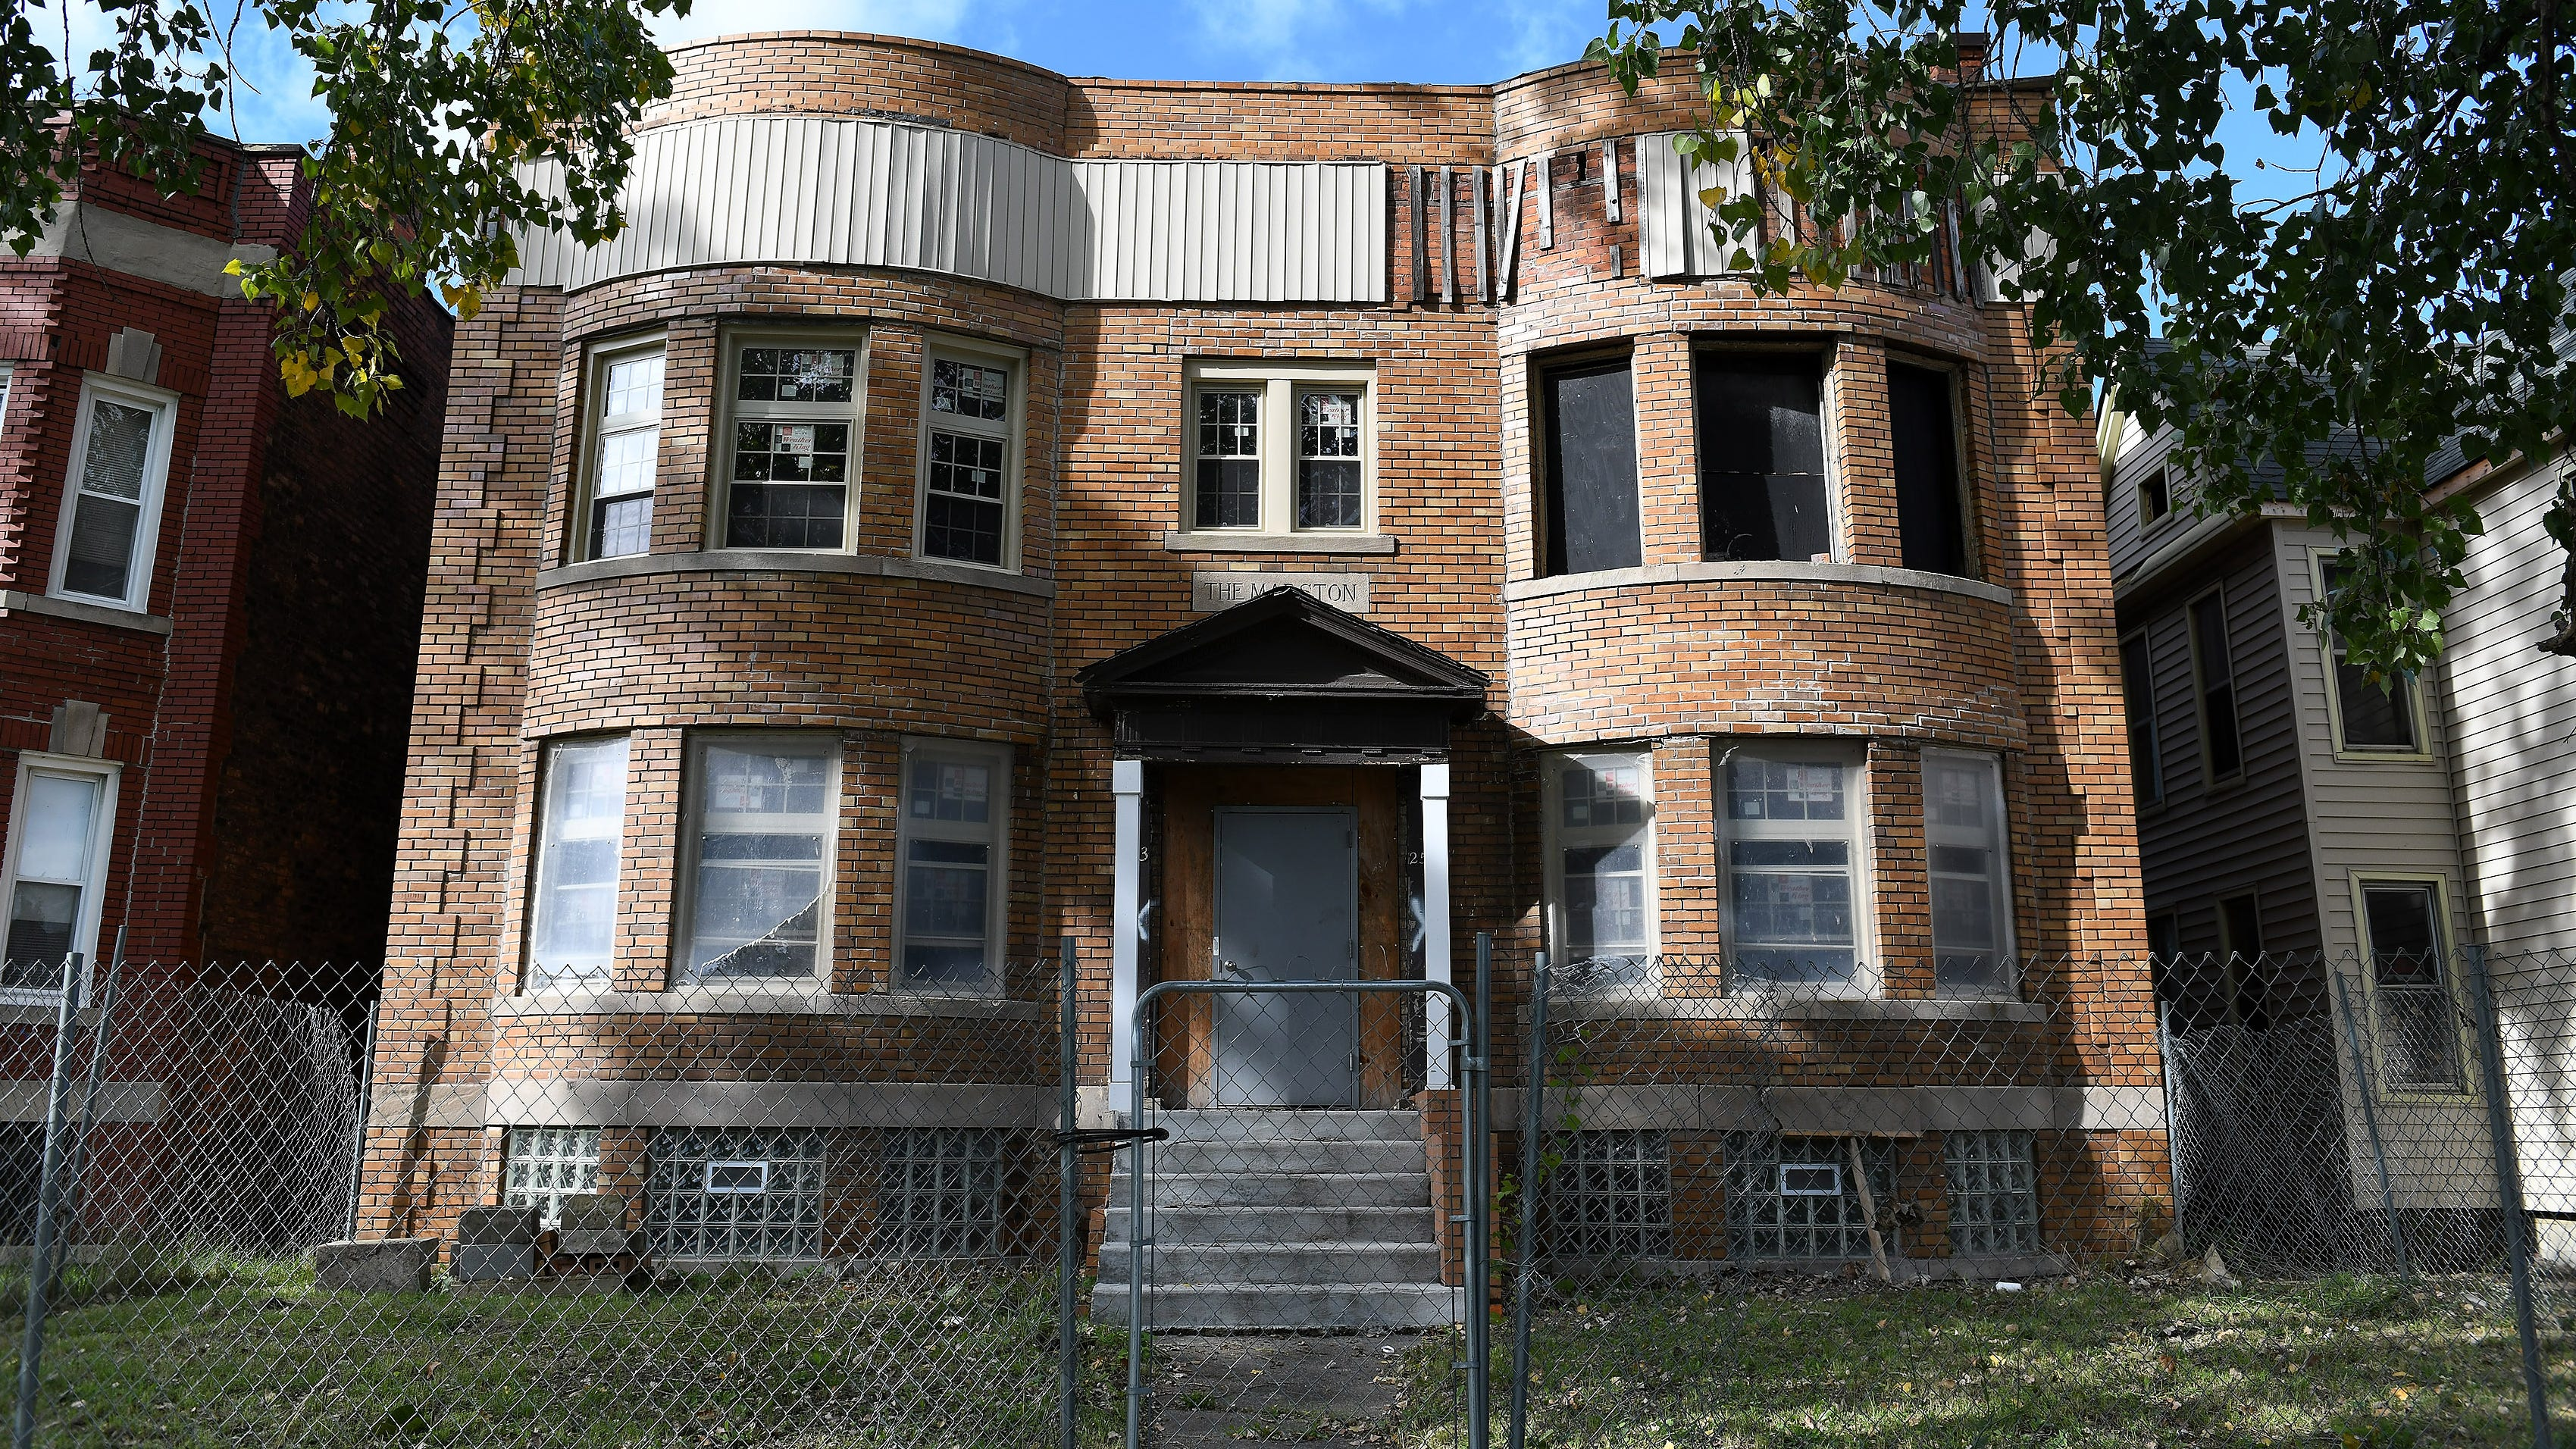 Gilchrist late on taxes for blighted building